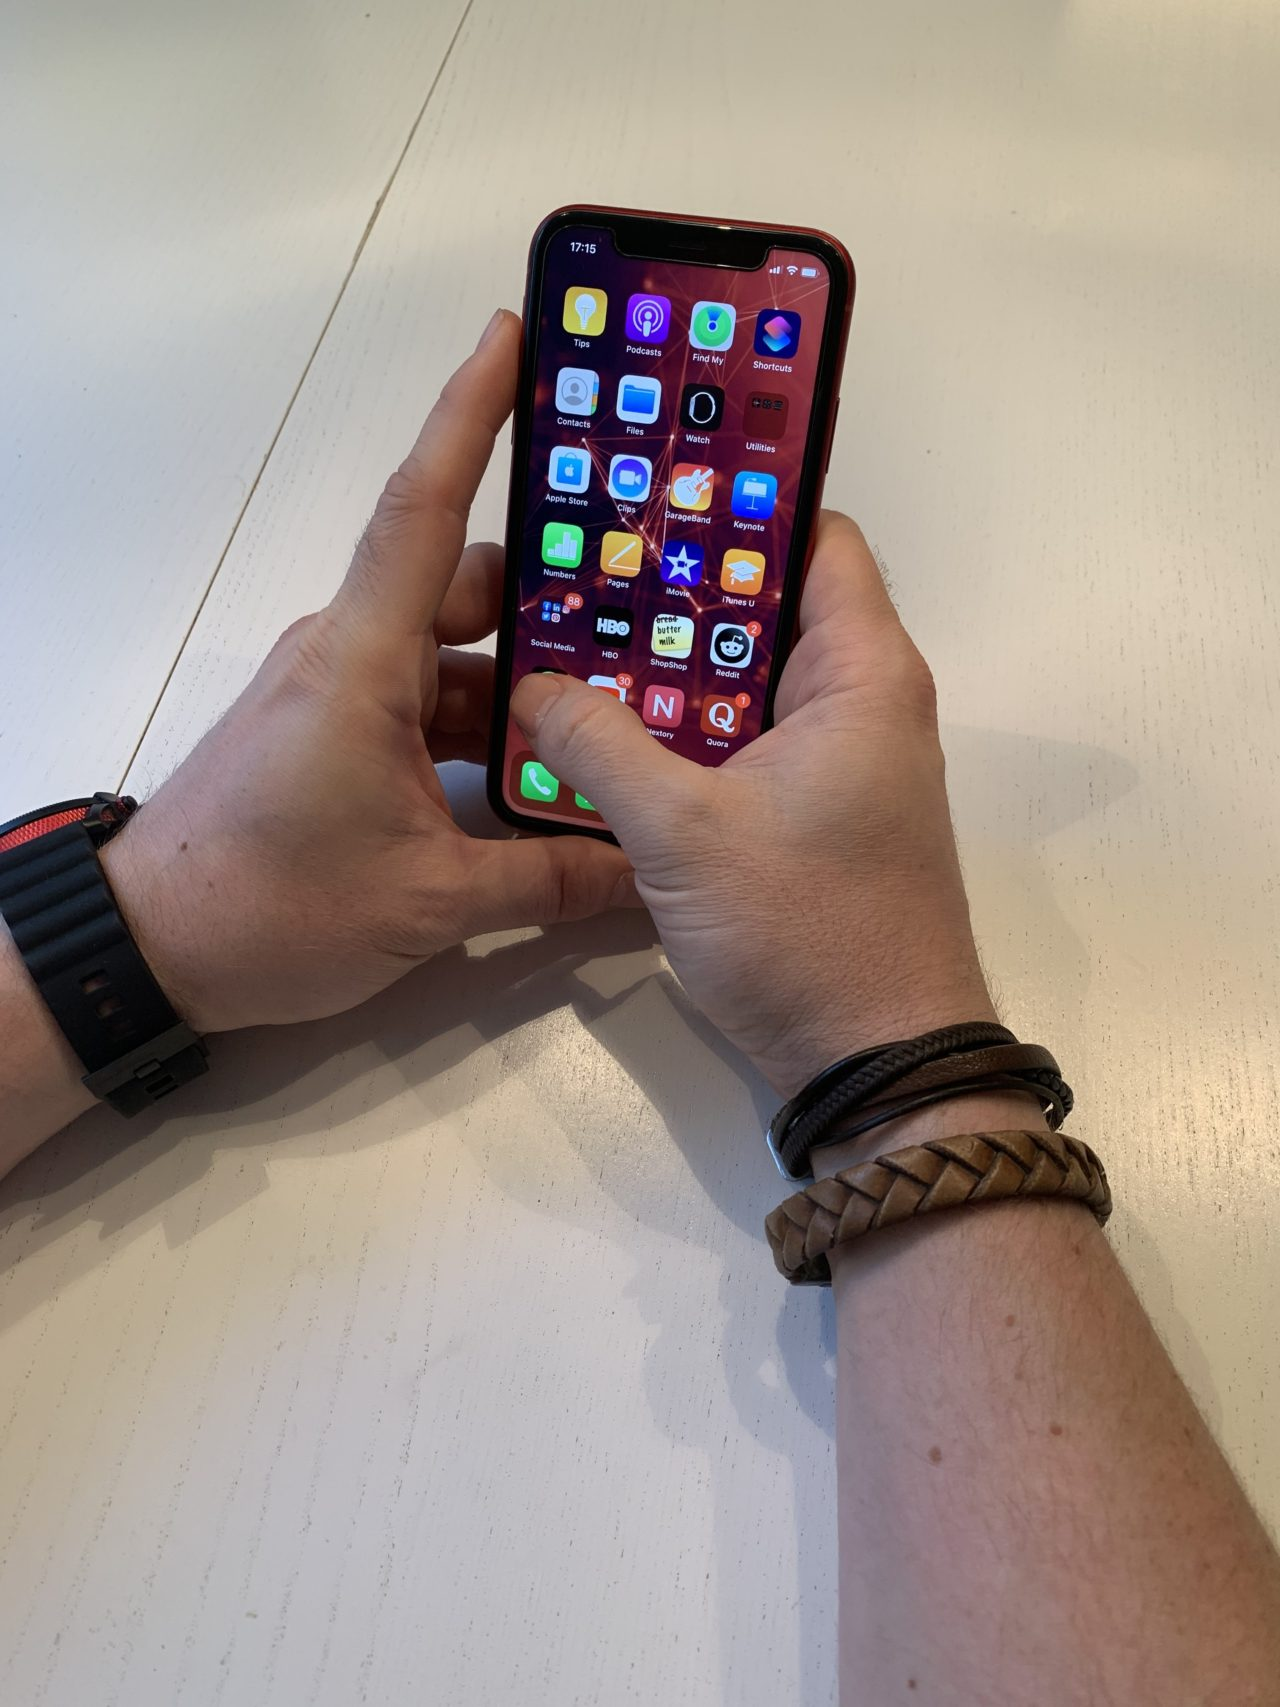 Man With Bracelets Holding A Red iphone With Apps Visible